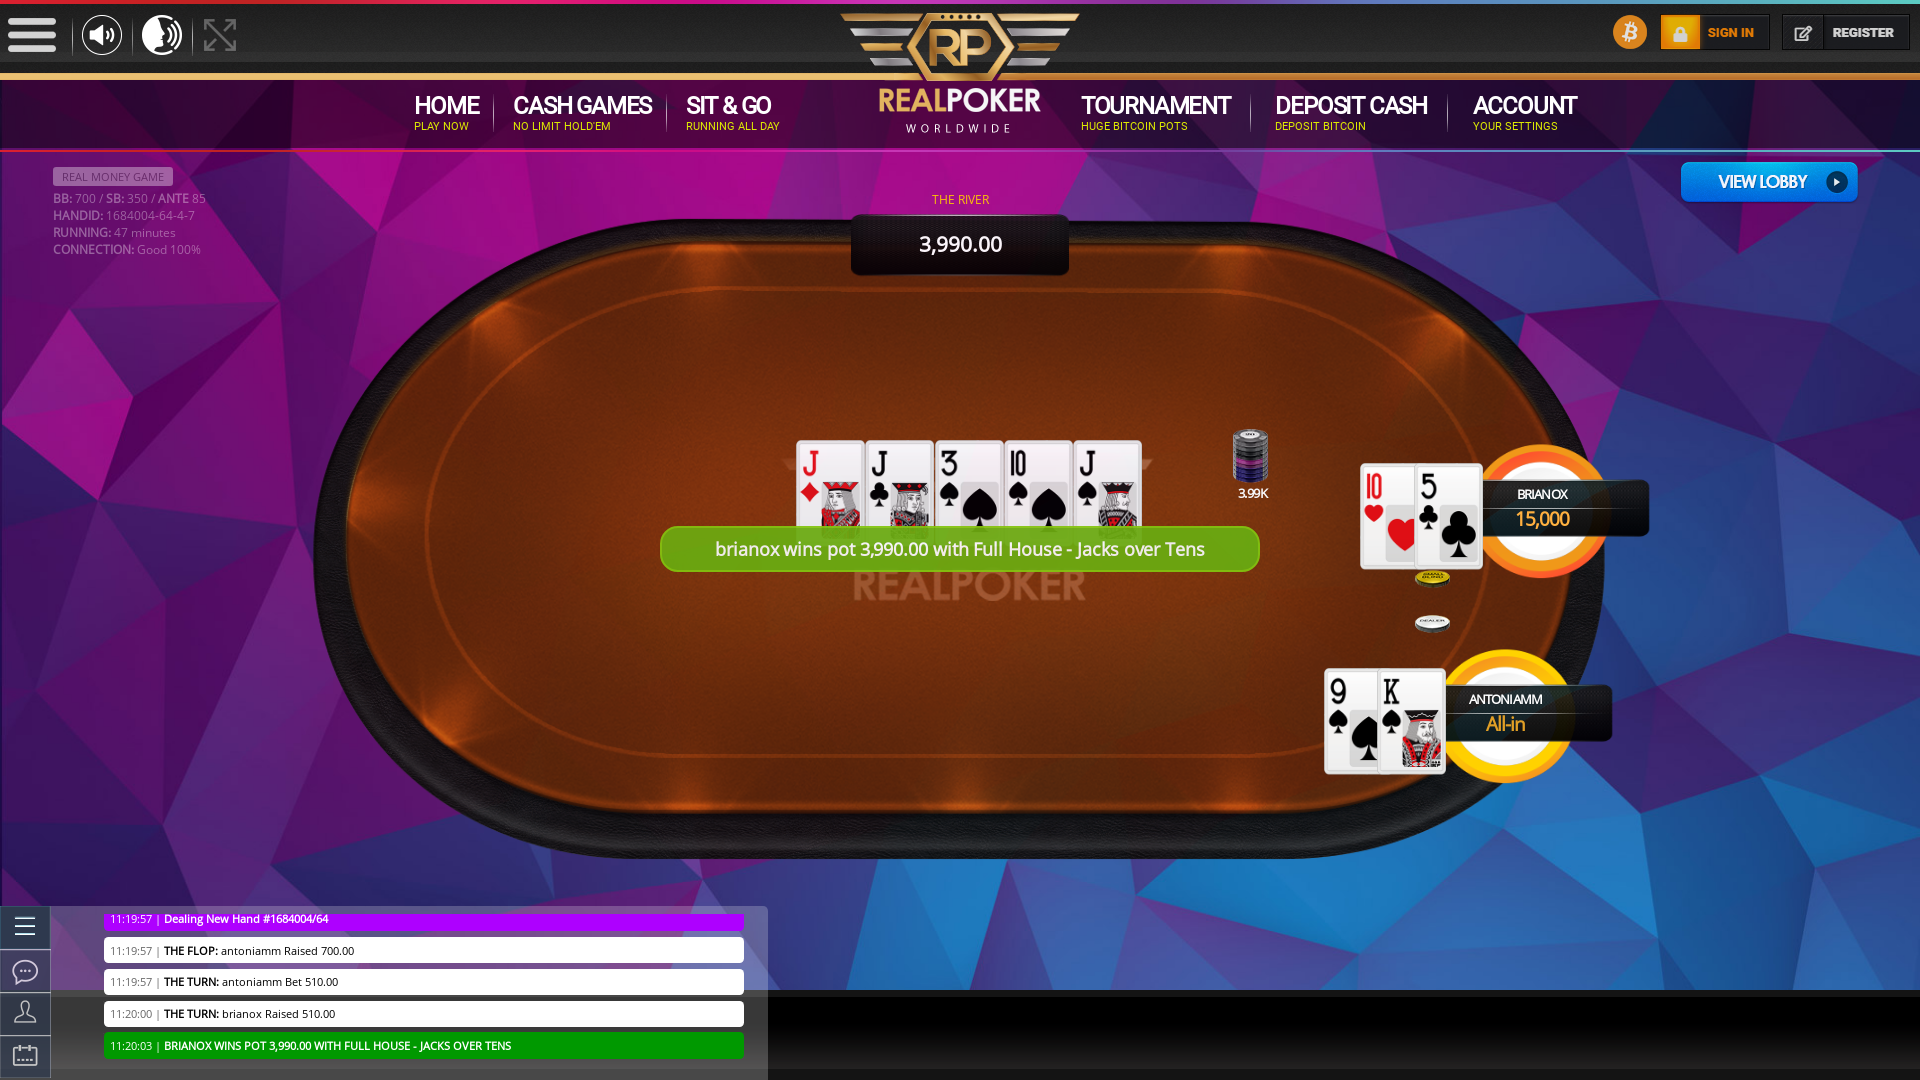 online poker on a 10 player table in the 47th minute match up